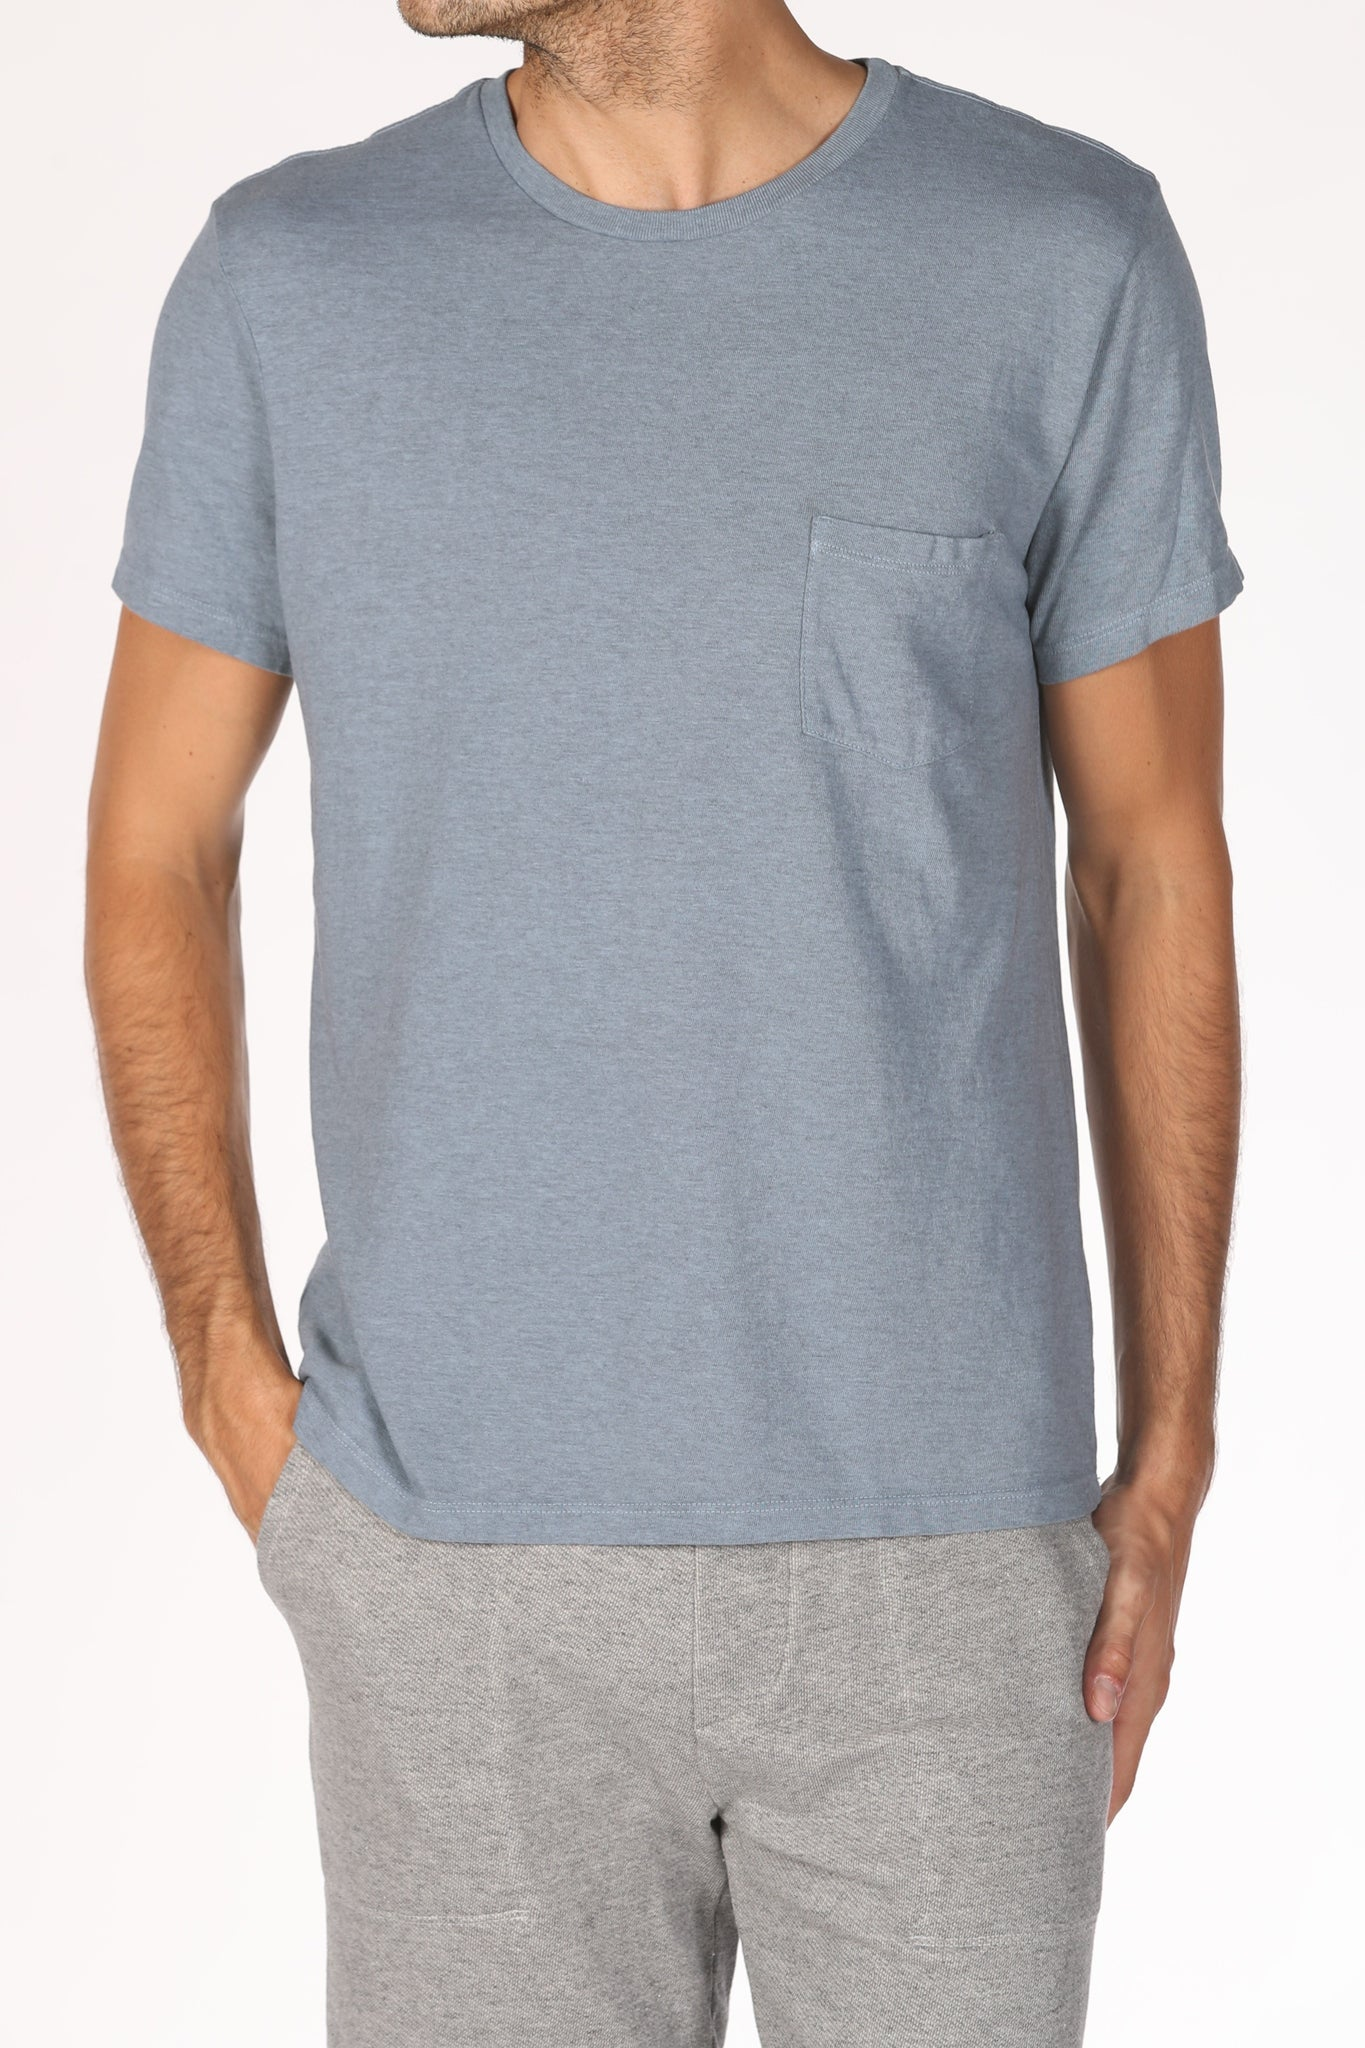 Save Khaki United Heavy Heather Jersey Pocket Tee